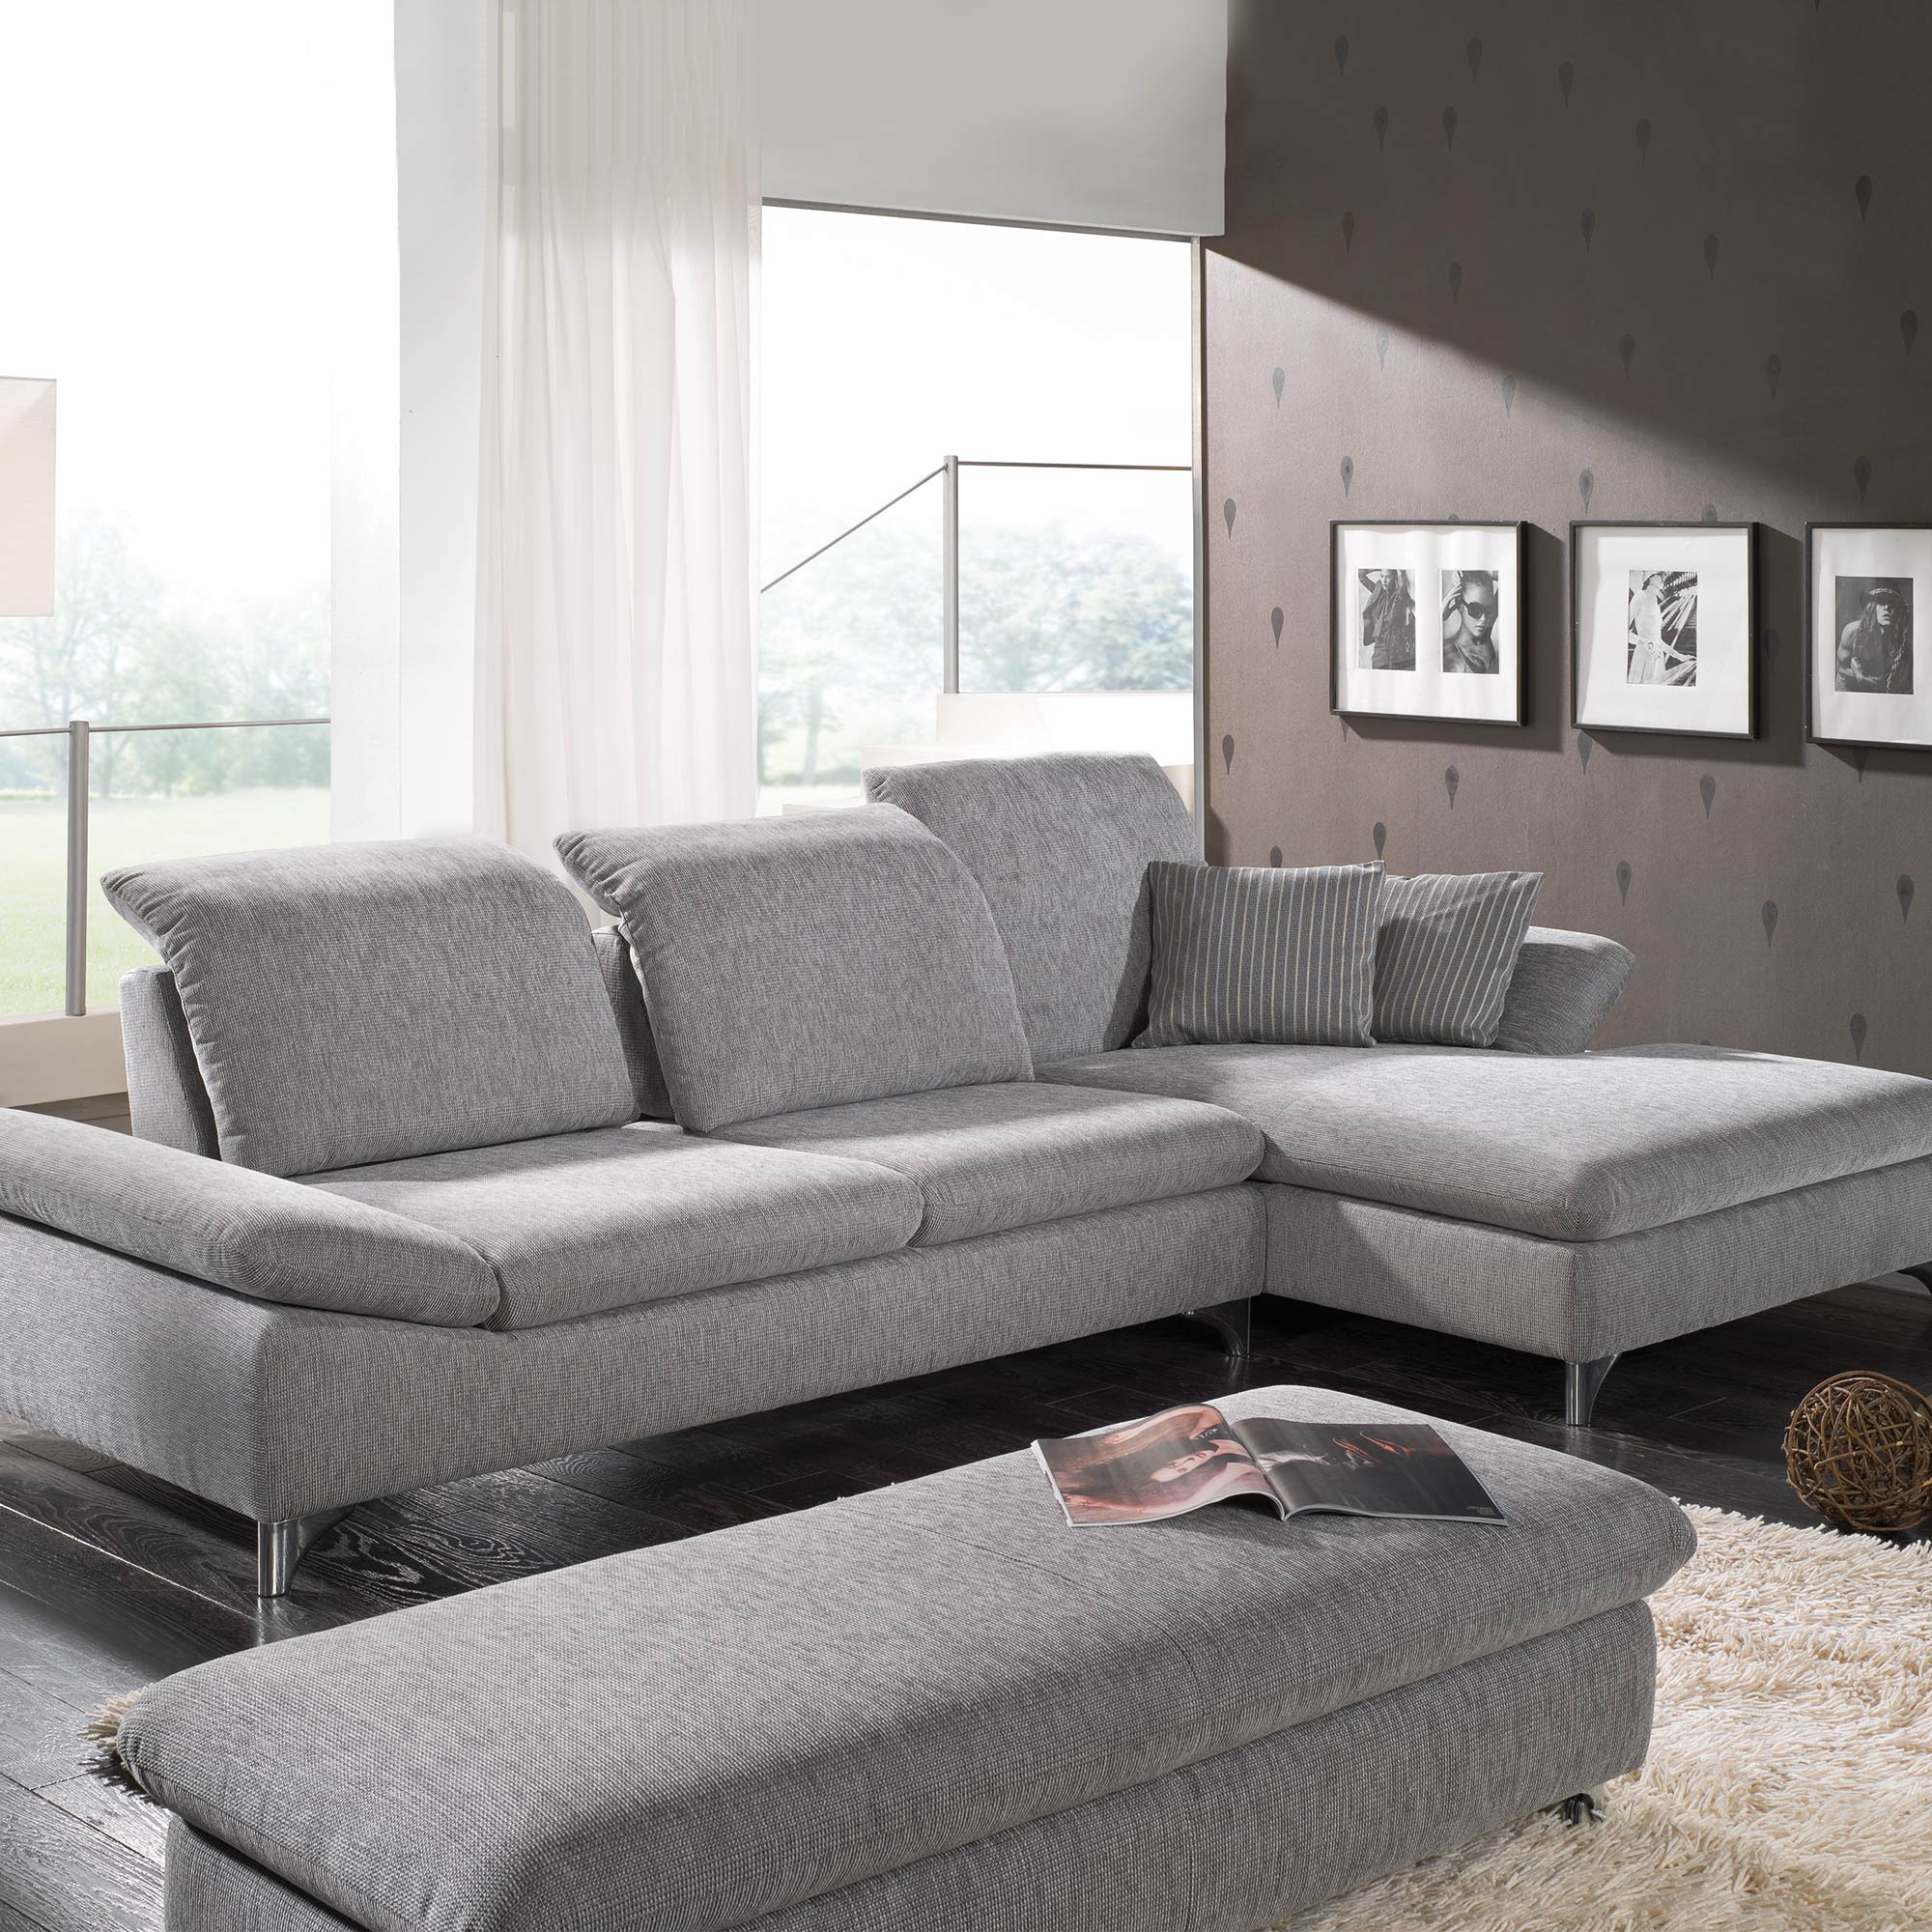 Willi Schillig Sessel Enjoy Sofa Von W Schillig